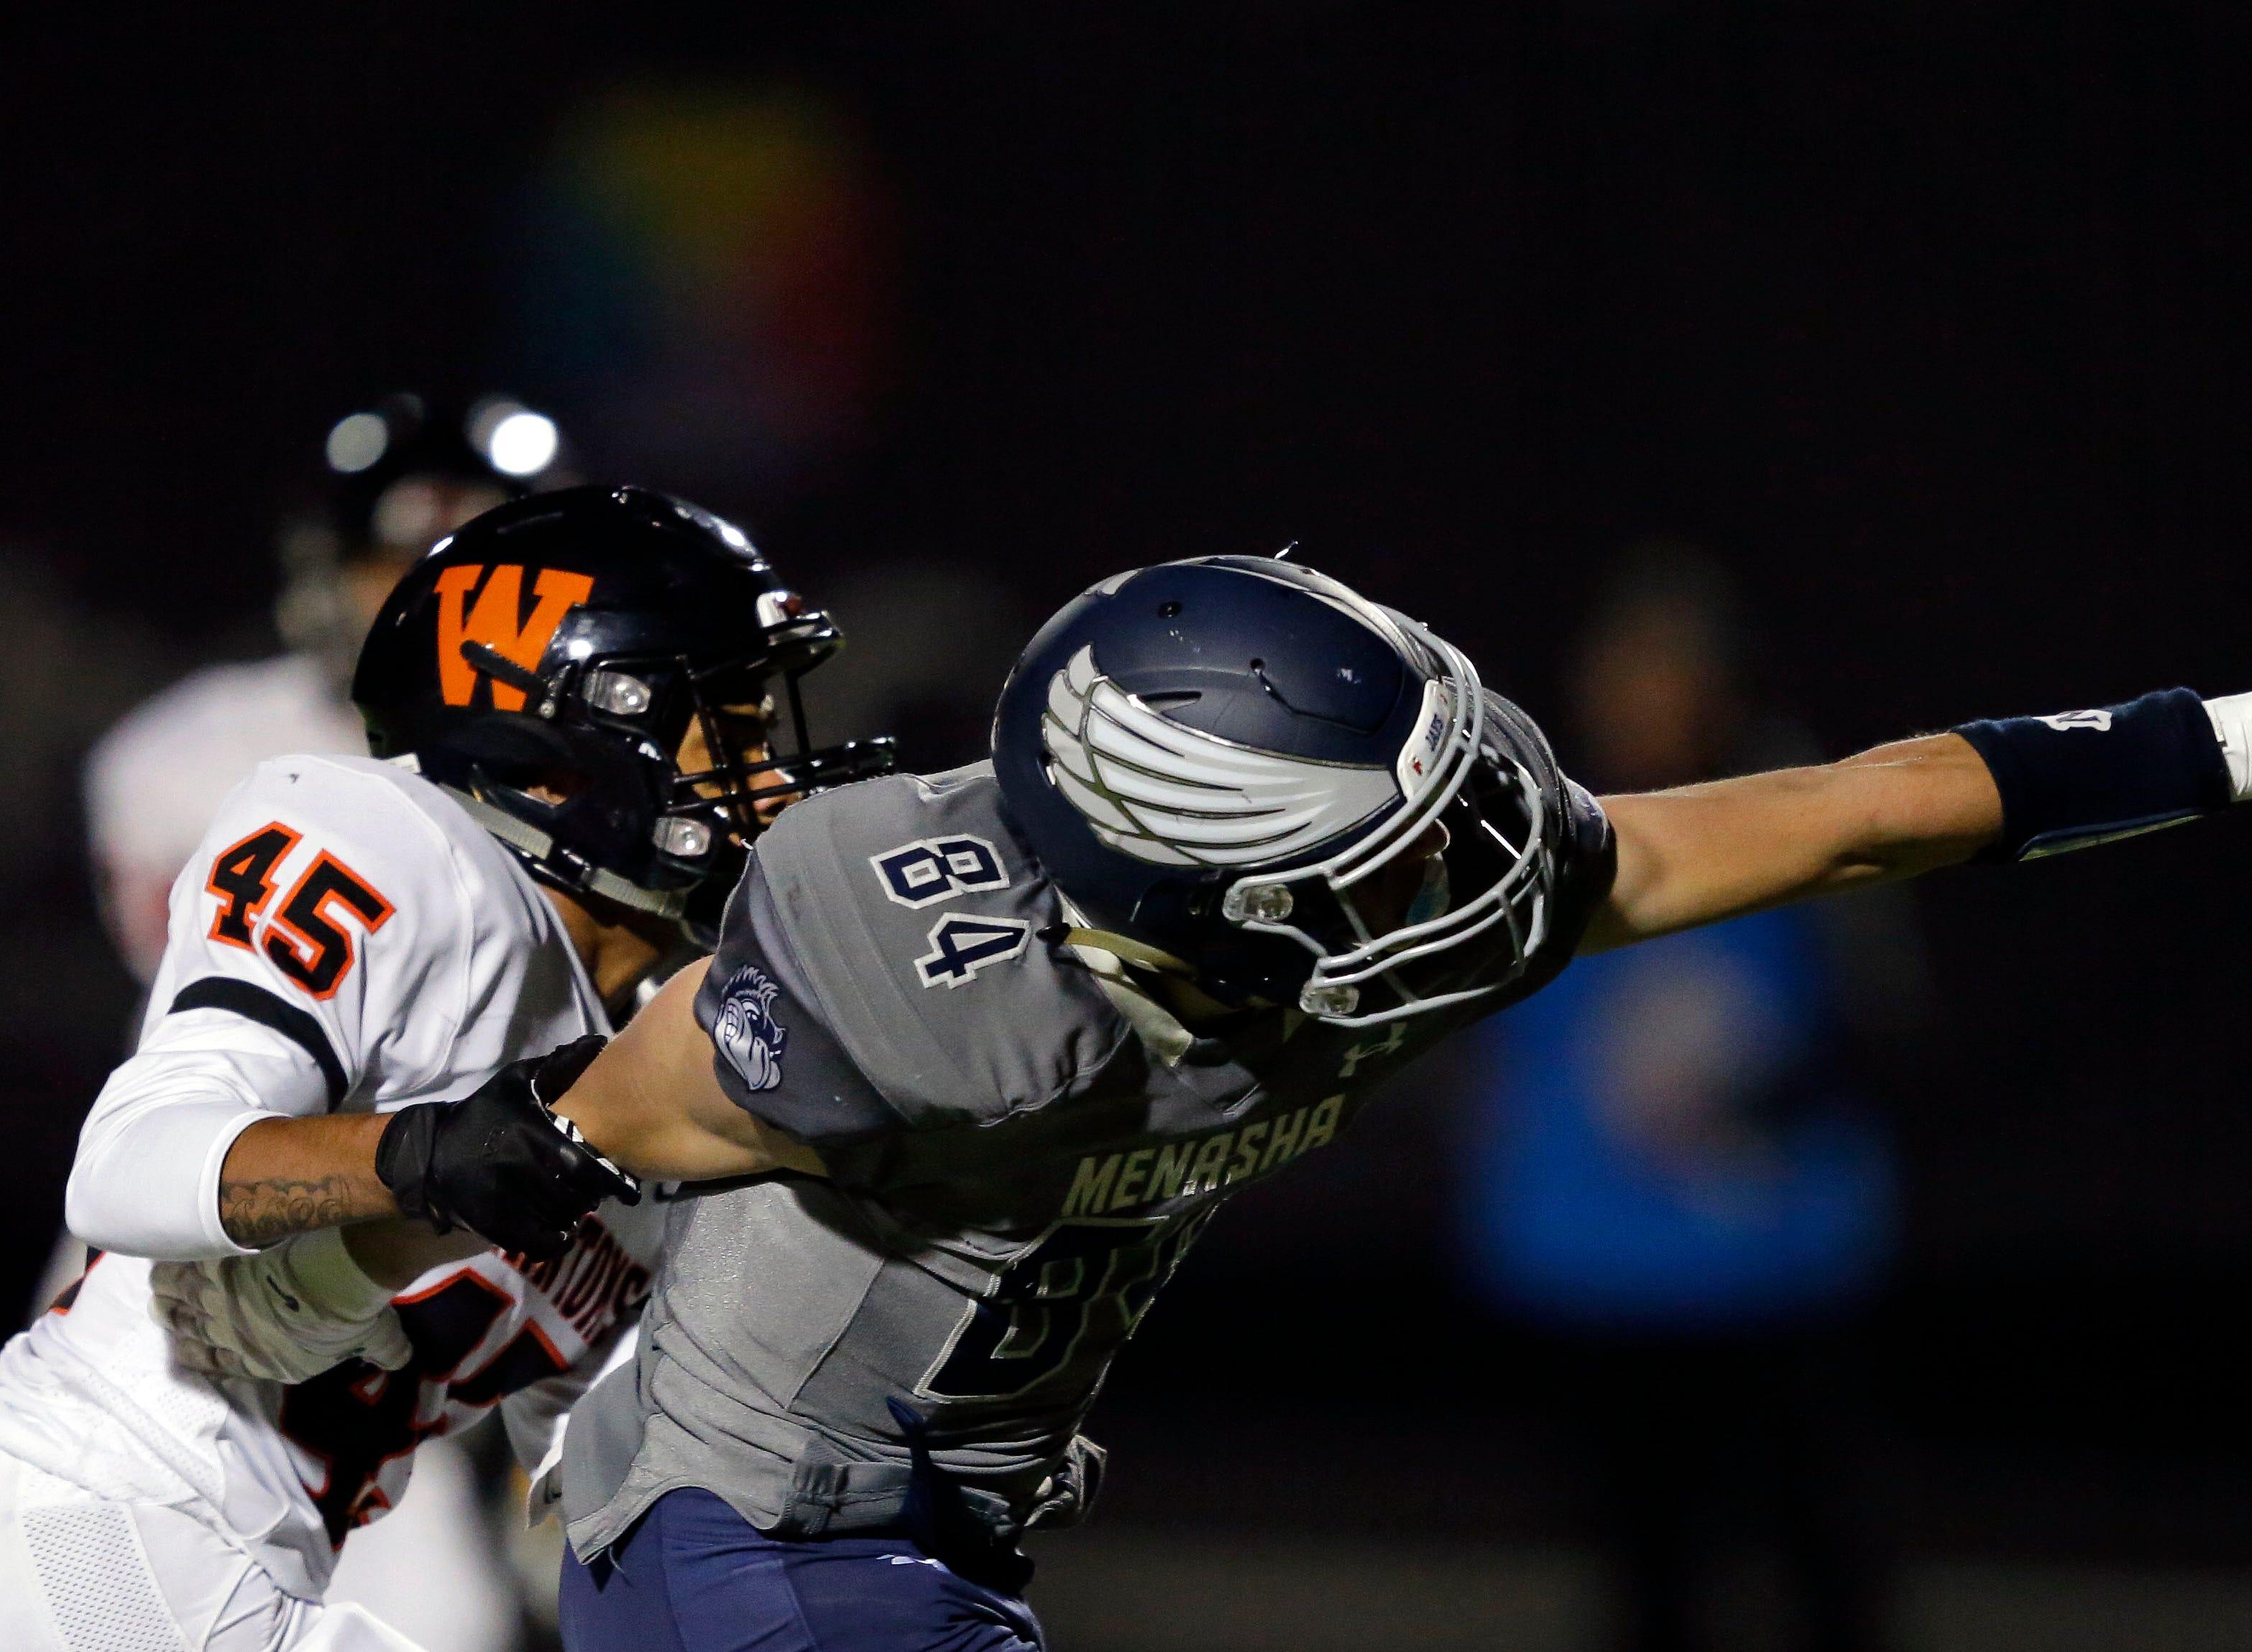 Isiah Burdette of West De Pere is called for pass interference against Ben Romnek of Menasha in a Bay Conference football game Friday, September 28, 2018, at Calder Stadium in Menasha, Wis.Ron Page/USA TODAY NETWORK-Wisconsin